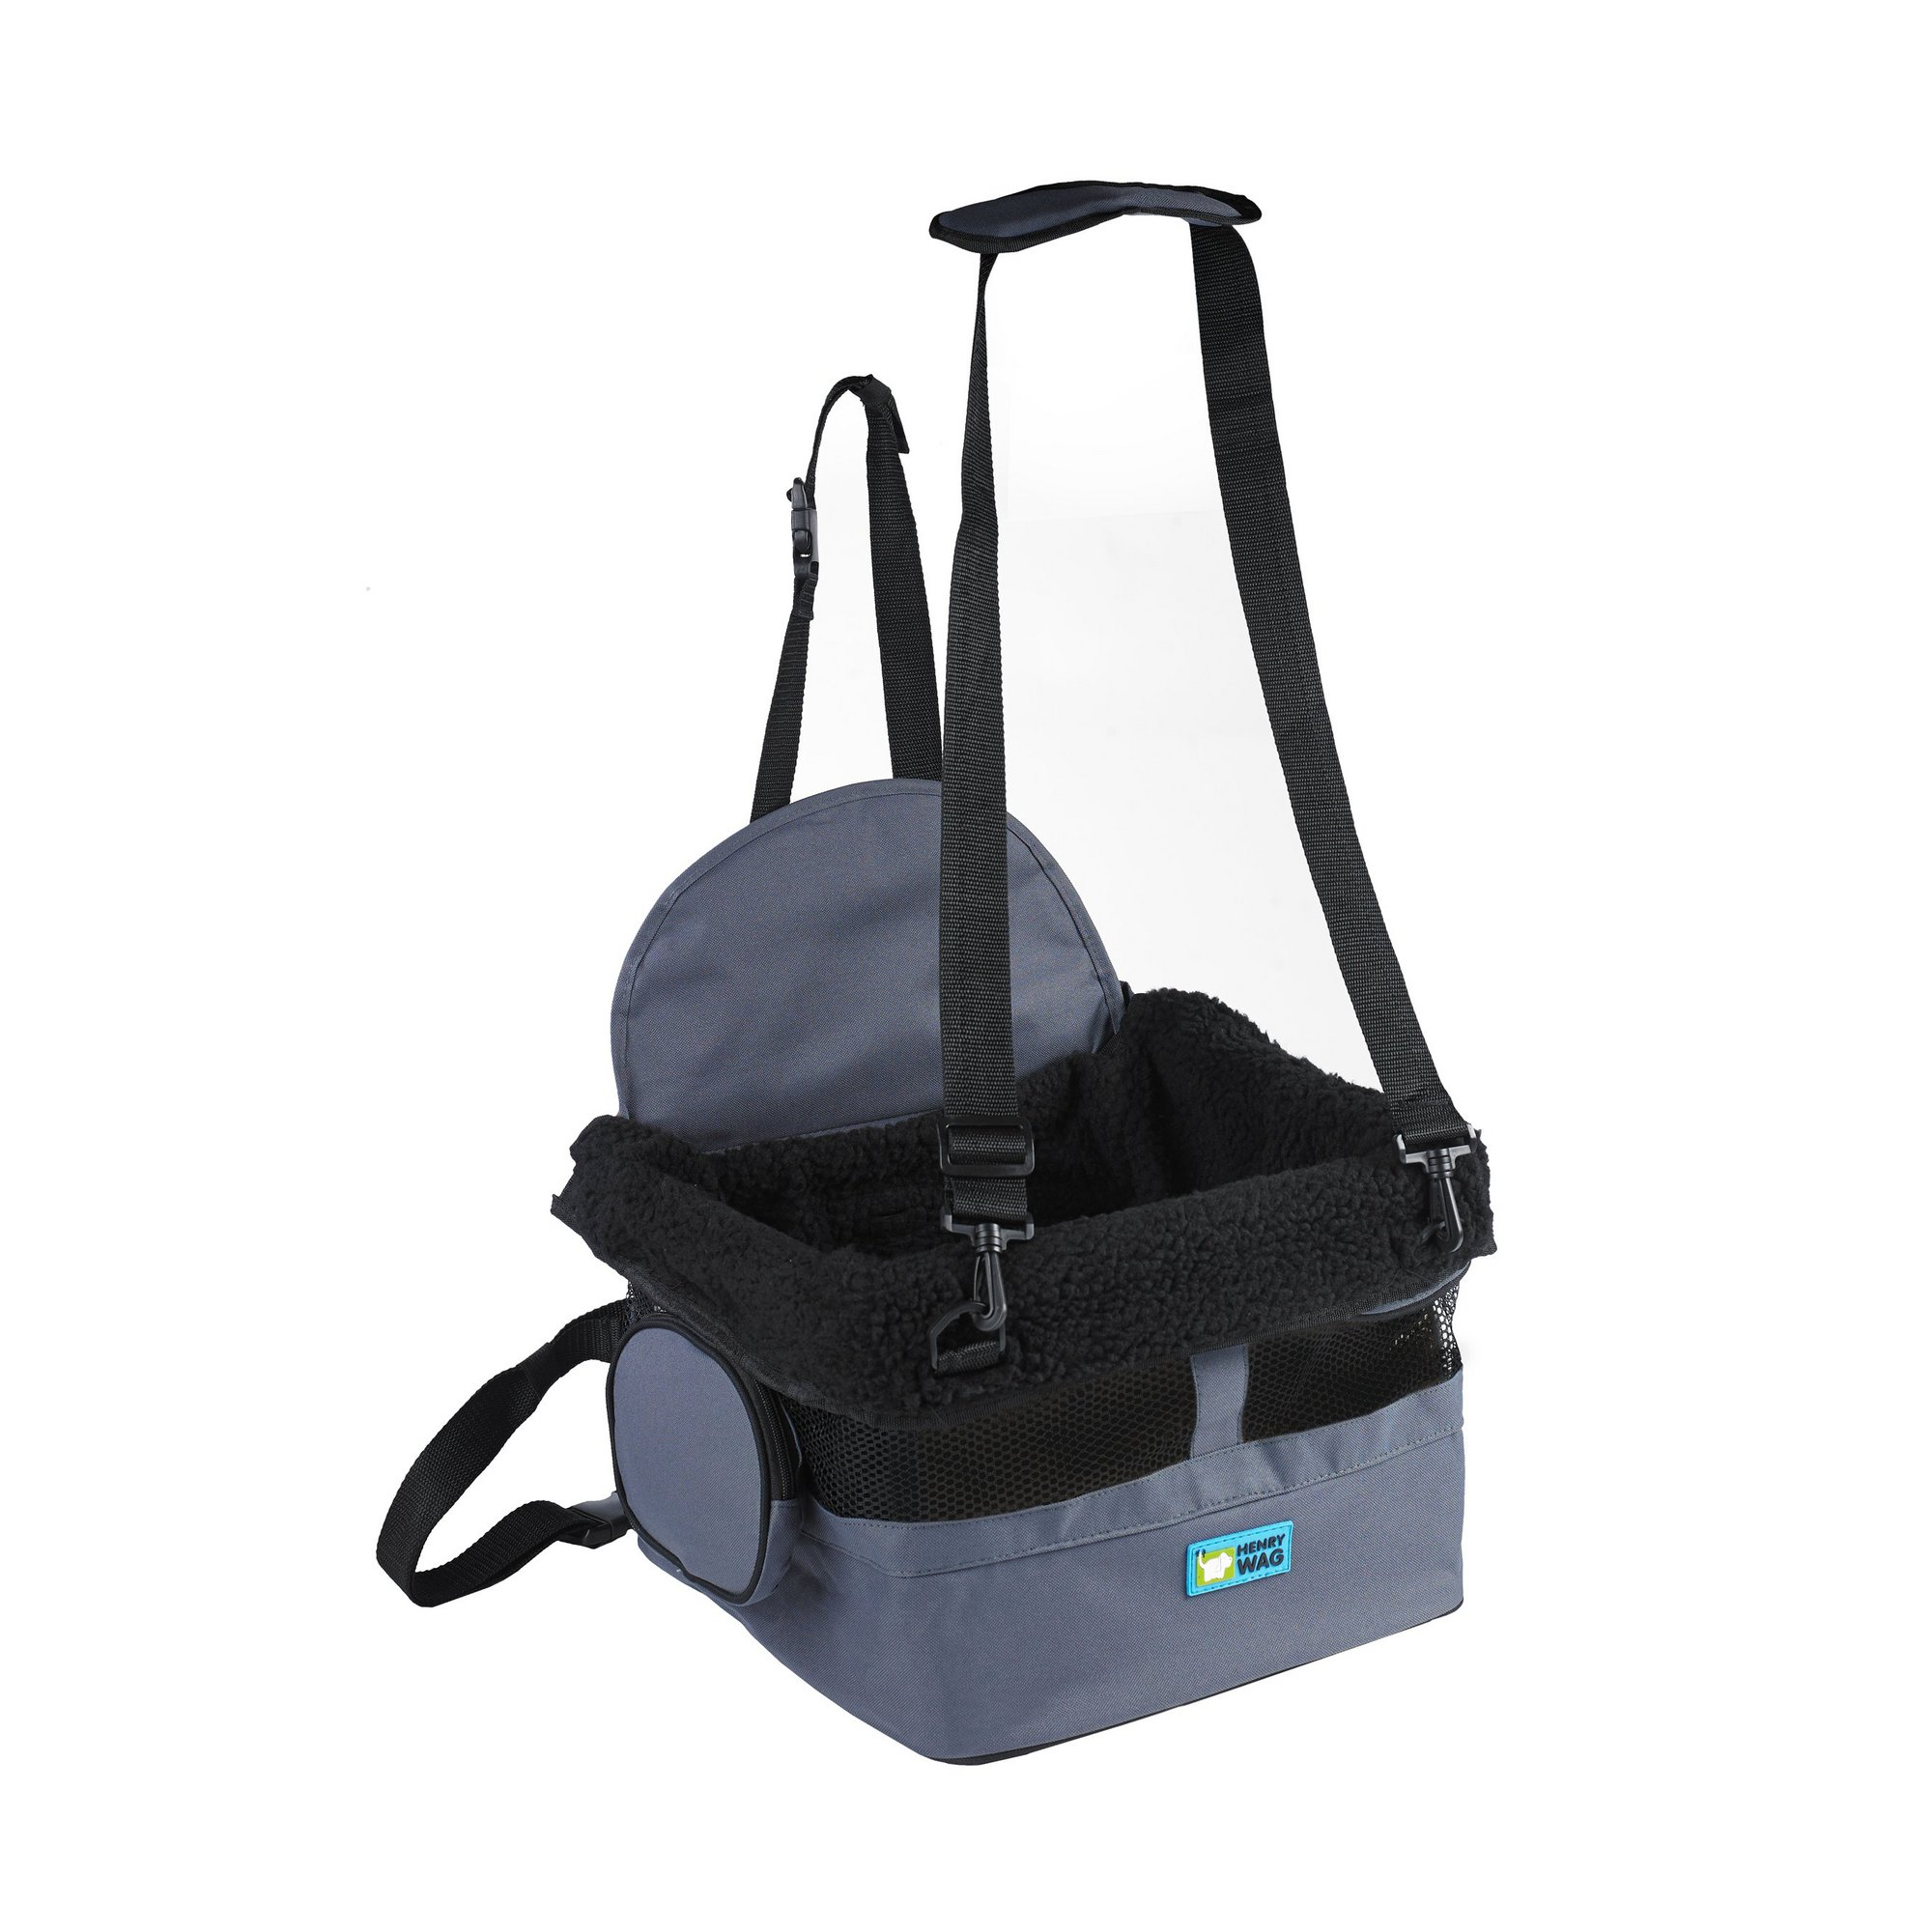 Image of Henry Wag Pet Car Booster Seat